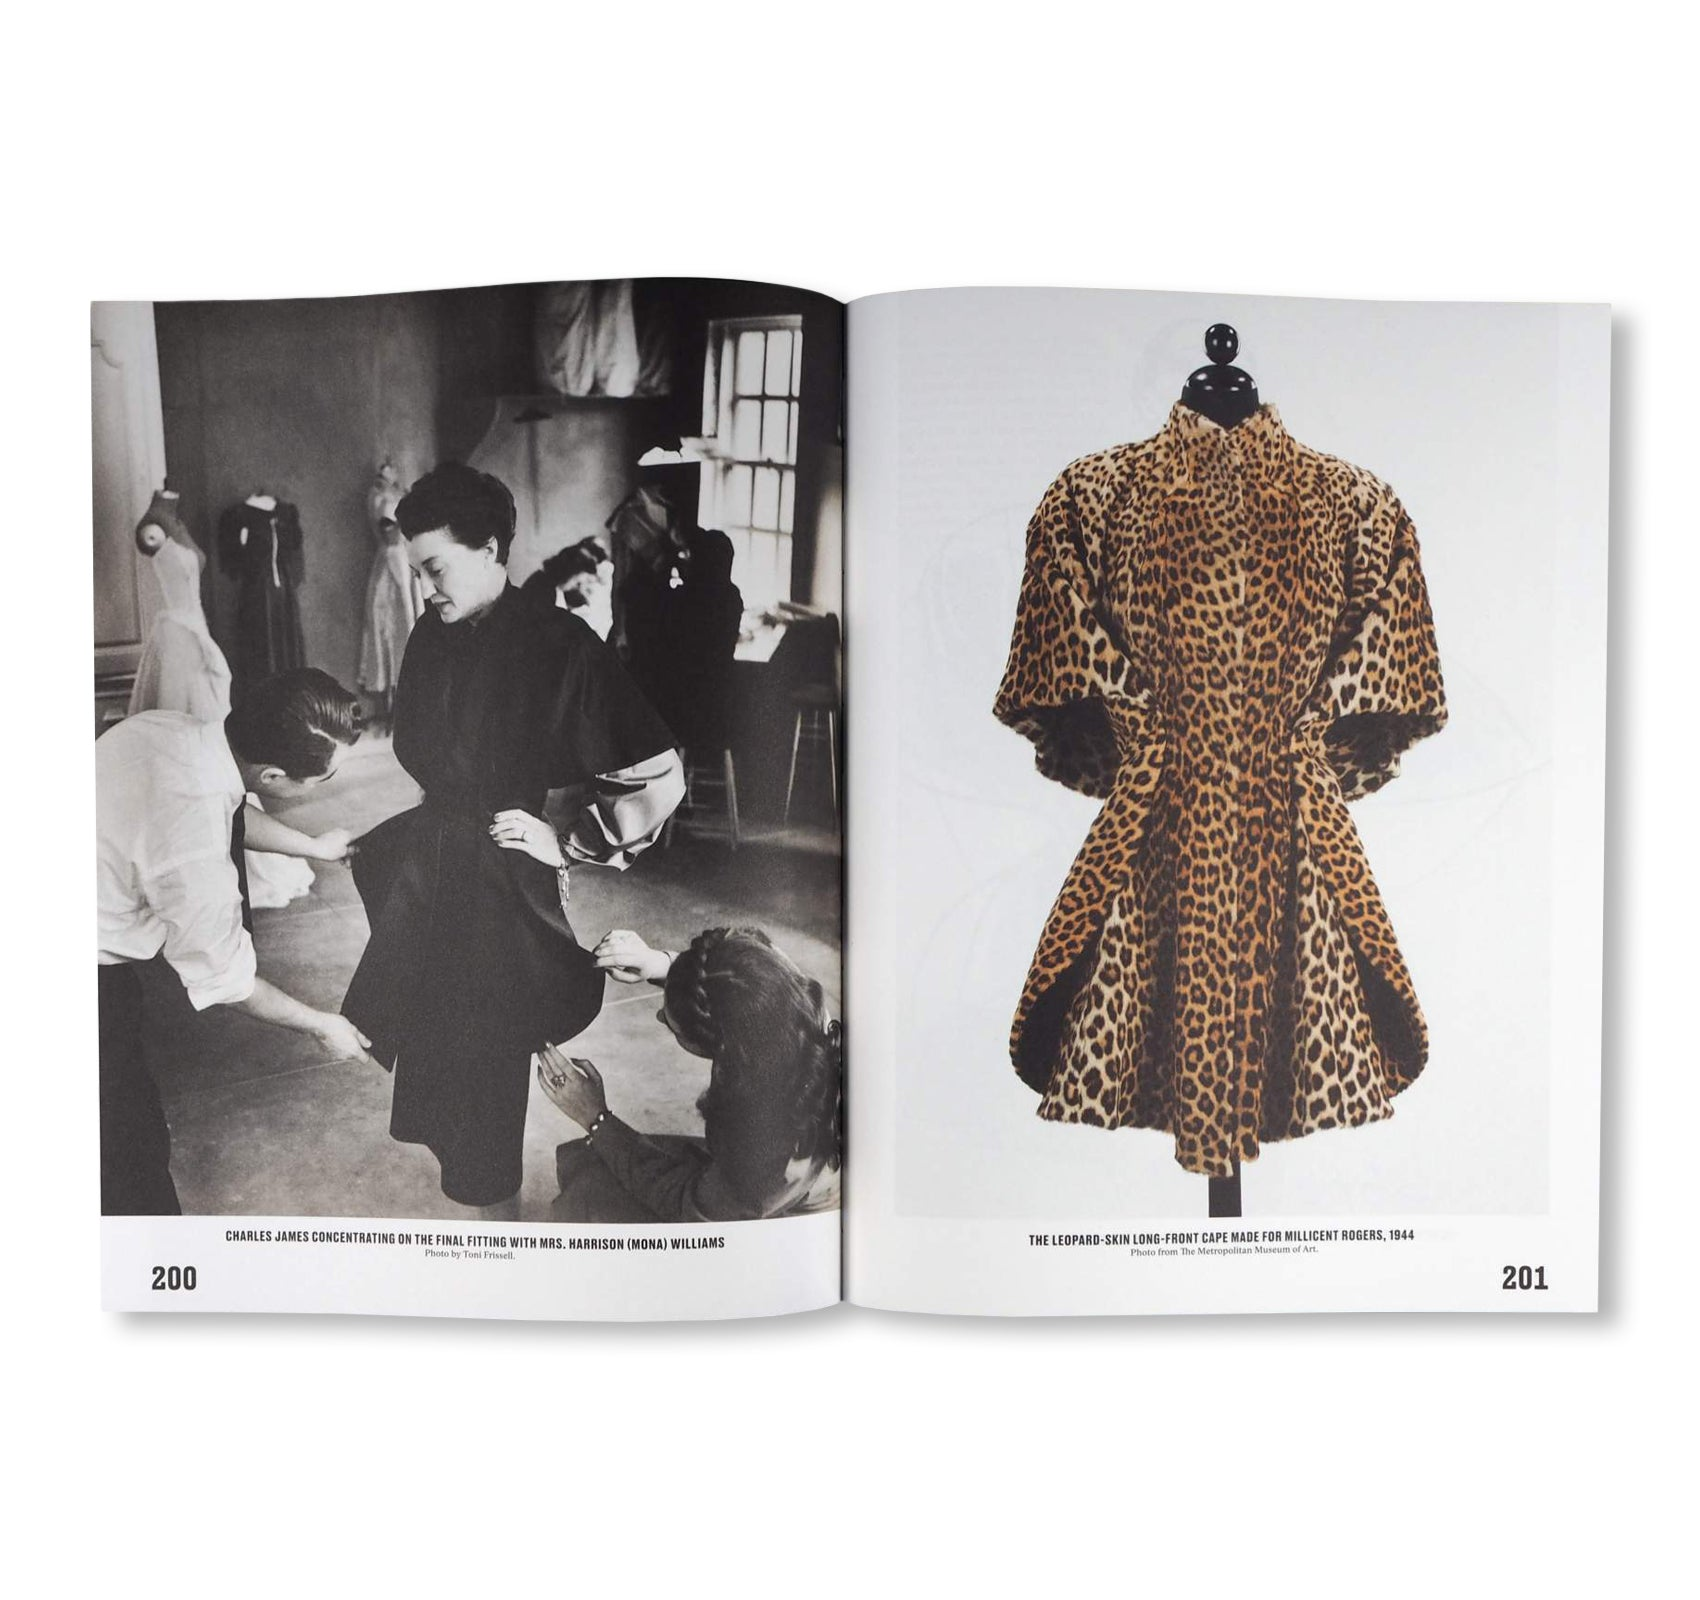 THE COUTURE SECRETS OF SHAPE by Charles James, Homer Layne, Dorothea Mink